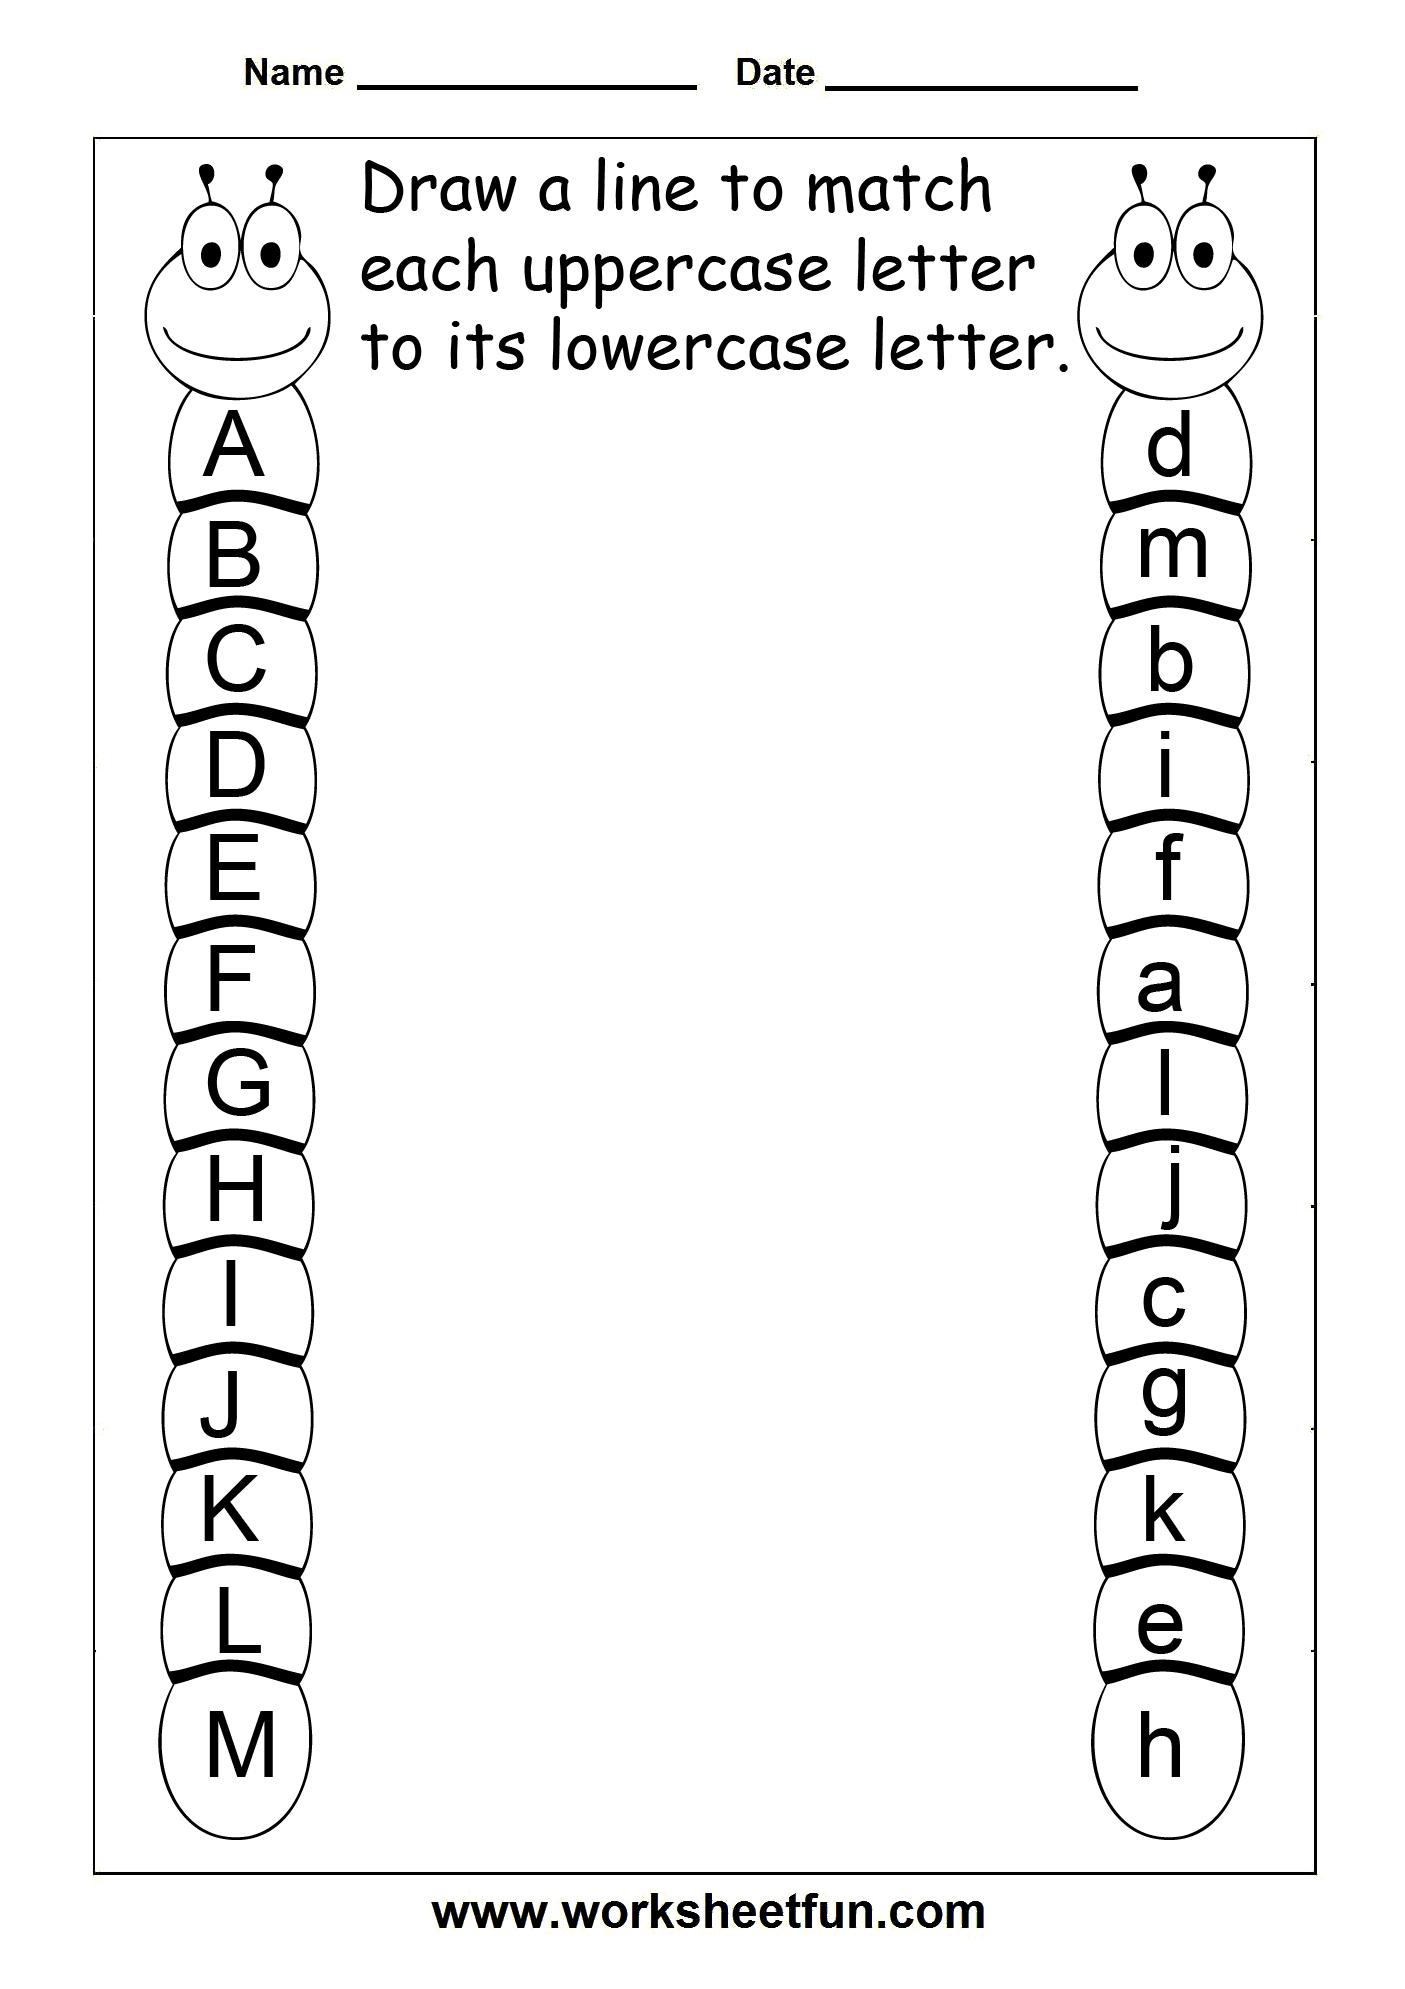 Weirdmailus  Marvelous  Images About Work Worksheet On Pinterest  Hidden Pictures  With Marvelous  Images About Work Worksheet On Pinterest  Hidden Pictures Color By Numbers And Puzzles With Easy On The Eye Math Practice Worksheets Th Grade Also Verb Tense Agreement Worksheets In Addition Mixed Operations With Decimals Worksheet And Amelia Earhart Worksheets As Well As Literal And Nonliteral Language Worksheets Additionally Science Buddies Bibliography Worksheet From Pinterestcom With Weirdmailus  Marvelous  Images About Work Worksheet On Pinterest  Hidden Pictures  With Easy On The Eye  Images About Work Worksheet On Pinterest  Hidden Pictures Color By Numbers And Puzzles And Marvelous Math Practice Worksheets Th Grade Also Verb Tense Agreement Worksheets In Addition Mixed Operations With Decimals Worksheet From Pinterestcom